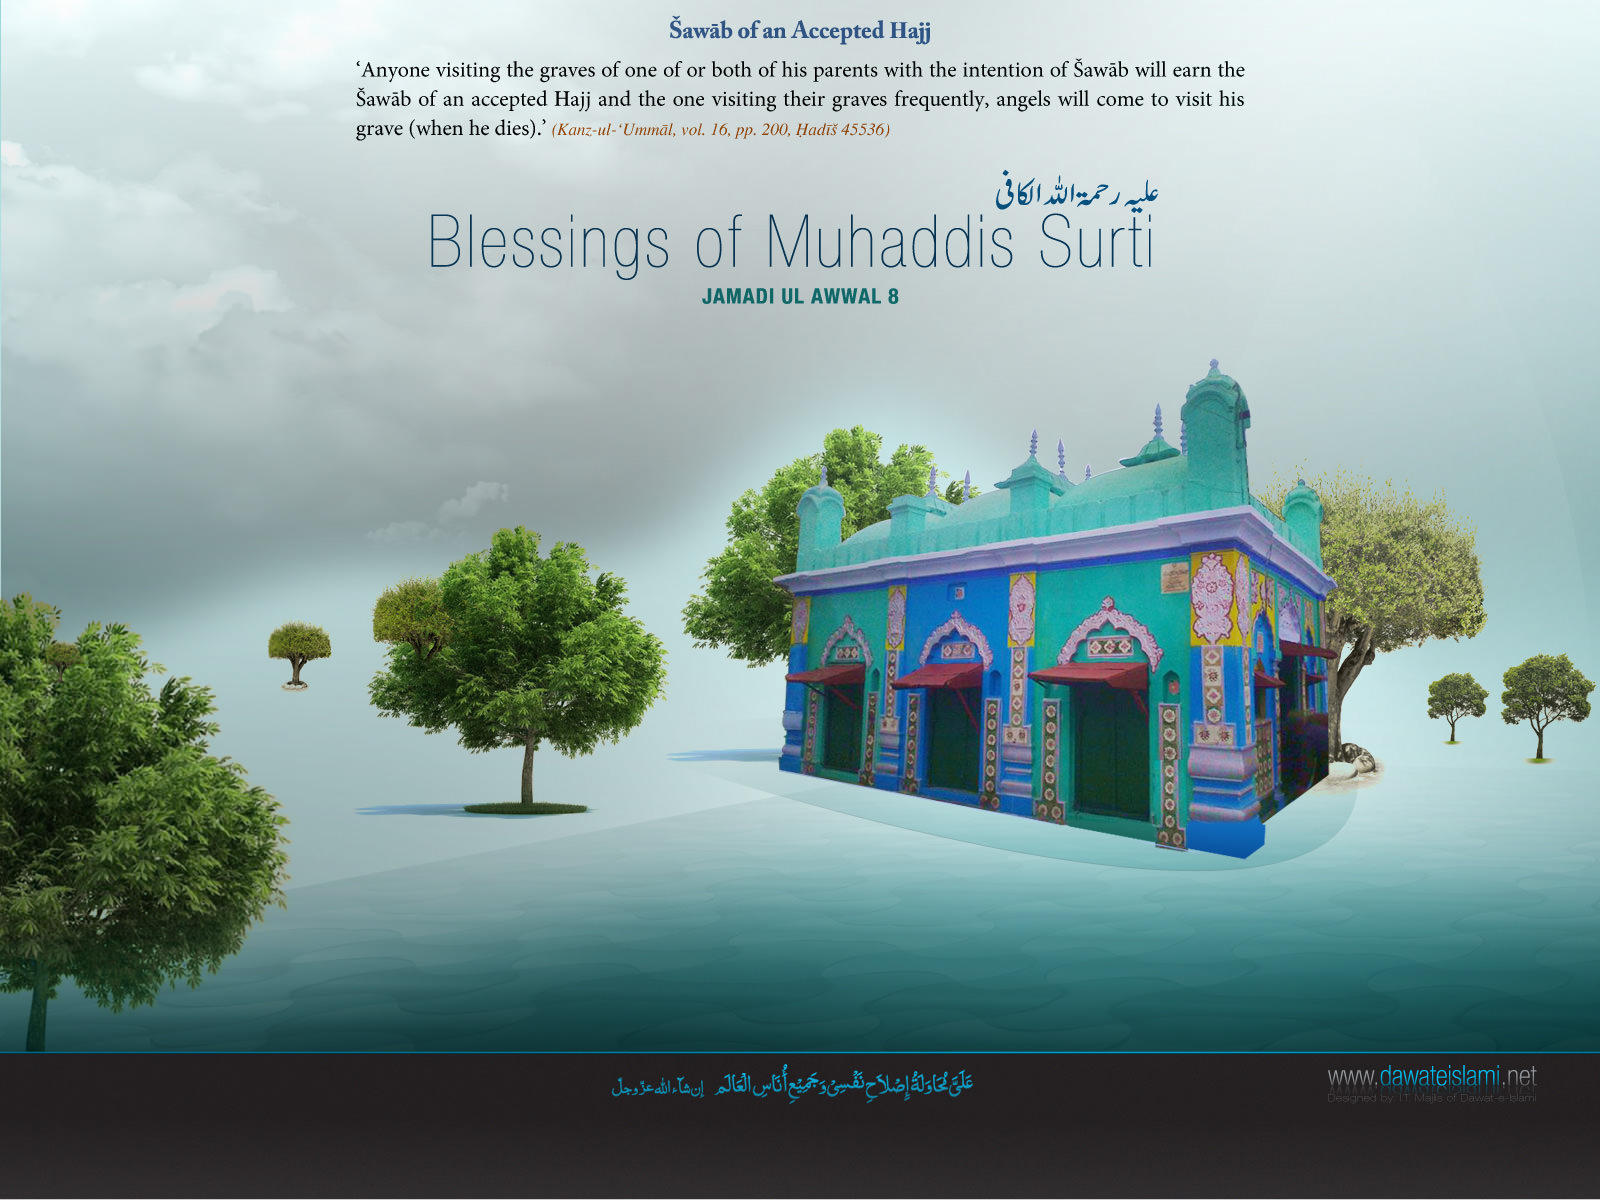 Wallpaper-Blessings Of Muhaddis Surti